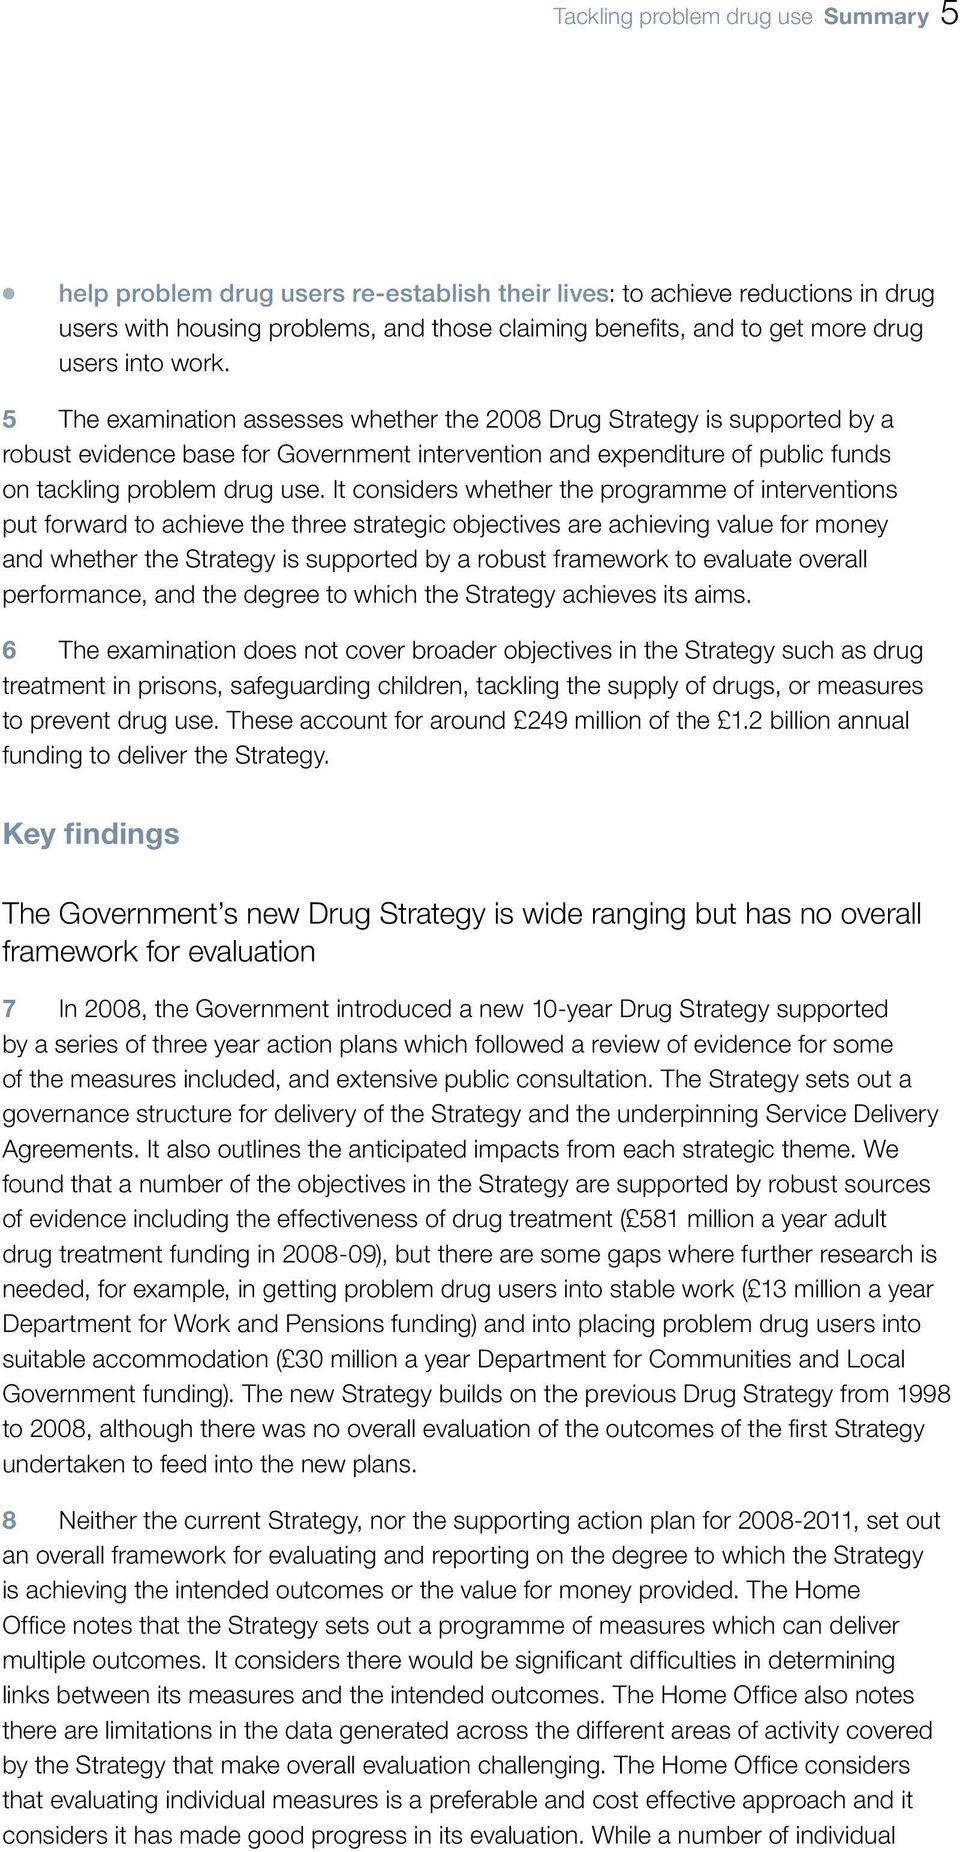 5 The examination assesses whether the 2008 Drug Strategy is supported by a robust evidence base for Government intervention and expenditure of public funds on tackling problem drug use.